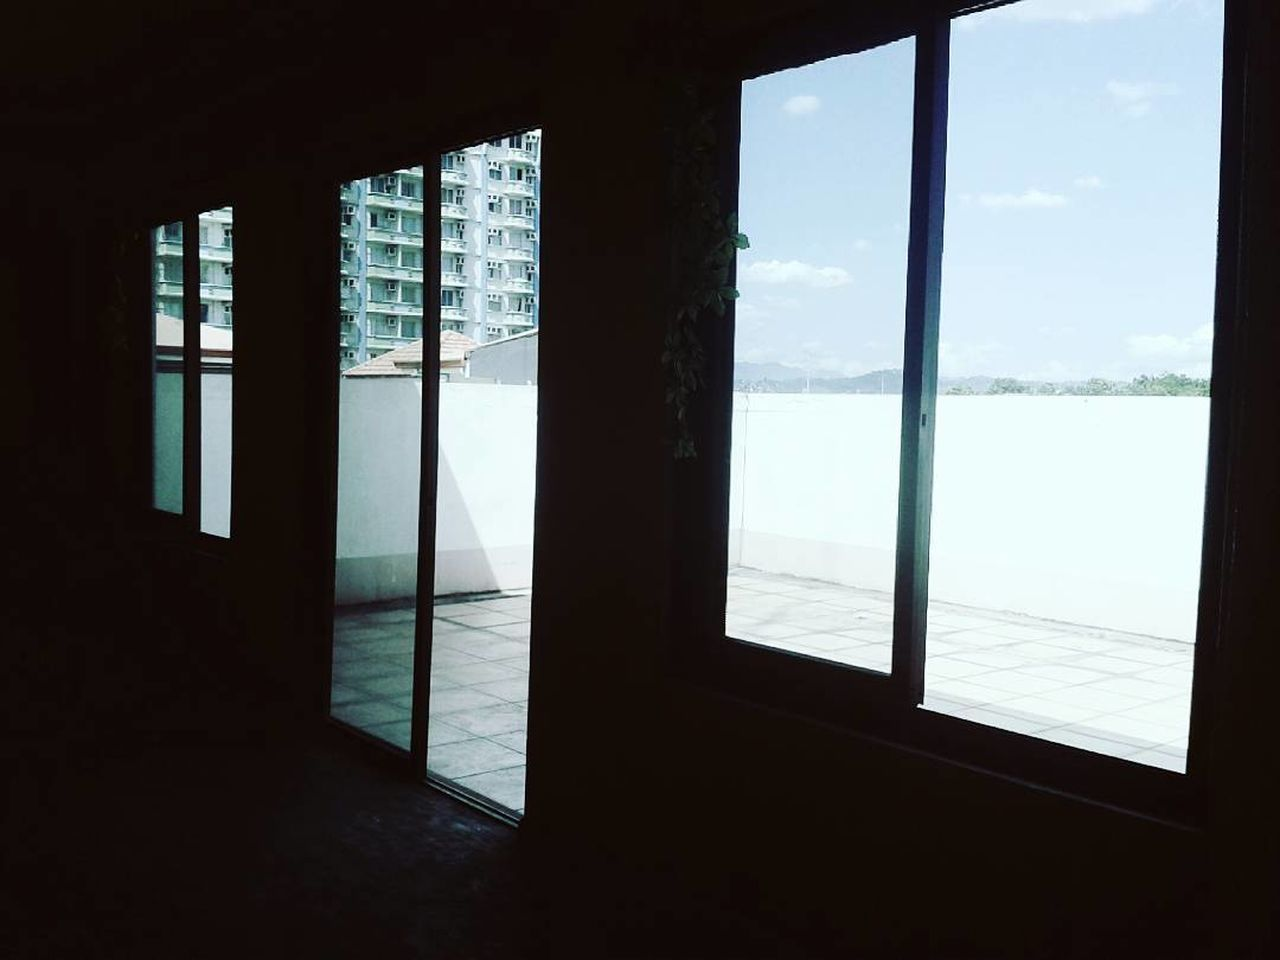 Window Indoors  Sea Water Architecture Travel Destinations Day Home Interior Domestic Life Vacations Lifestyles Modern Built Structure Sky Sliding Door Nature No People Beach Cityscape MyPics Indoors  Close-up